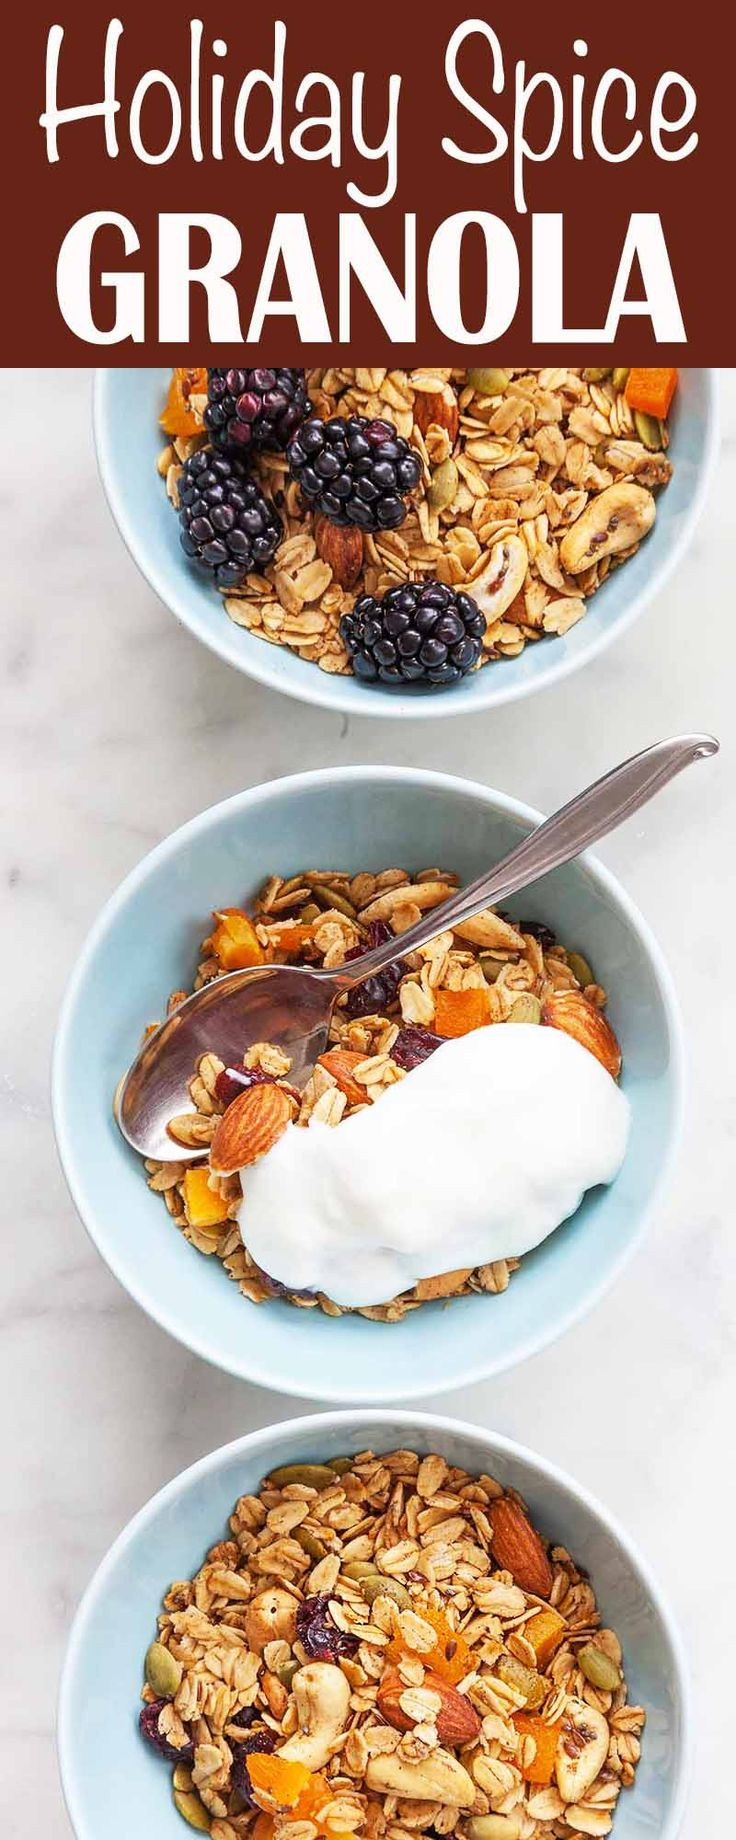 Holiday Spice Granola! Oats, almonds, cashews, cranberries, and dried ...